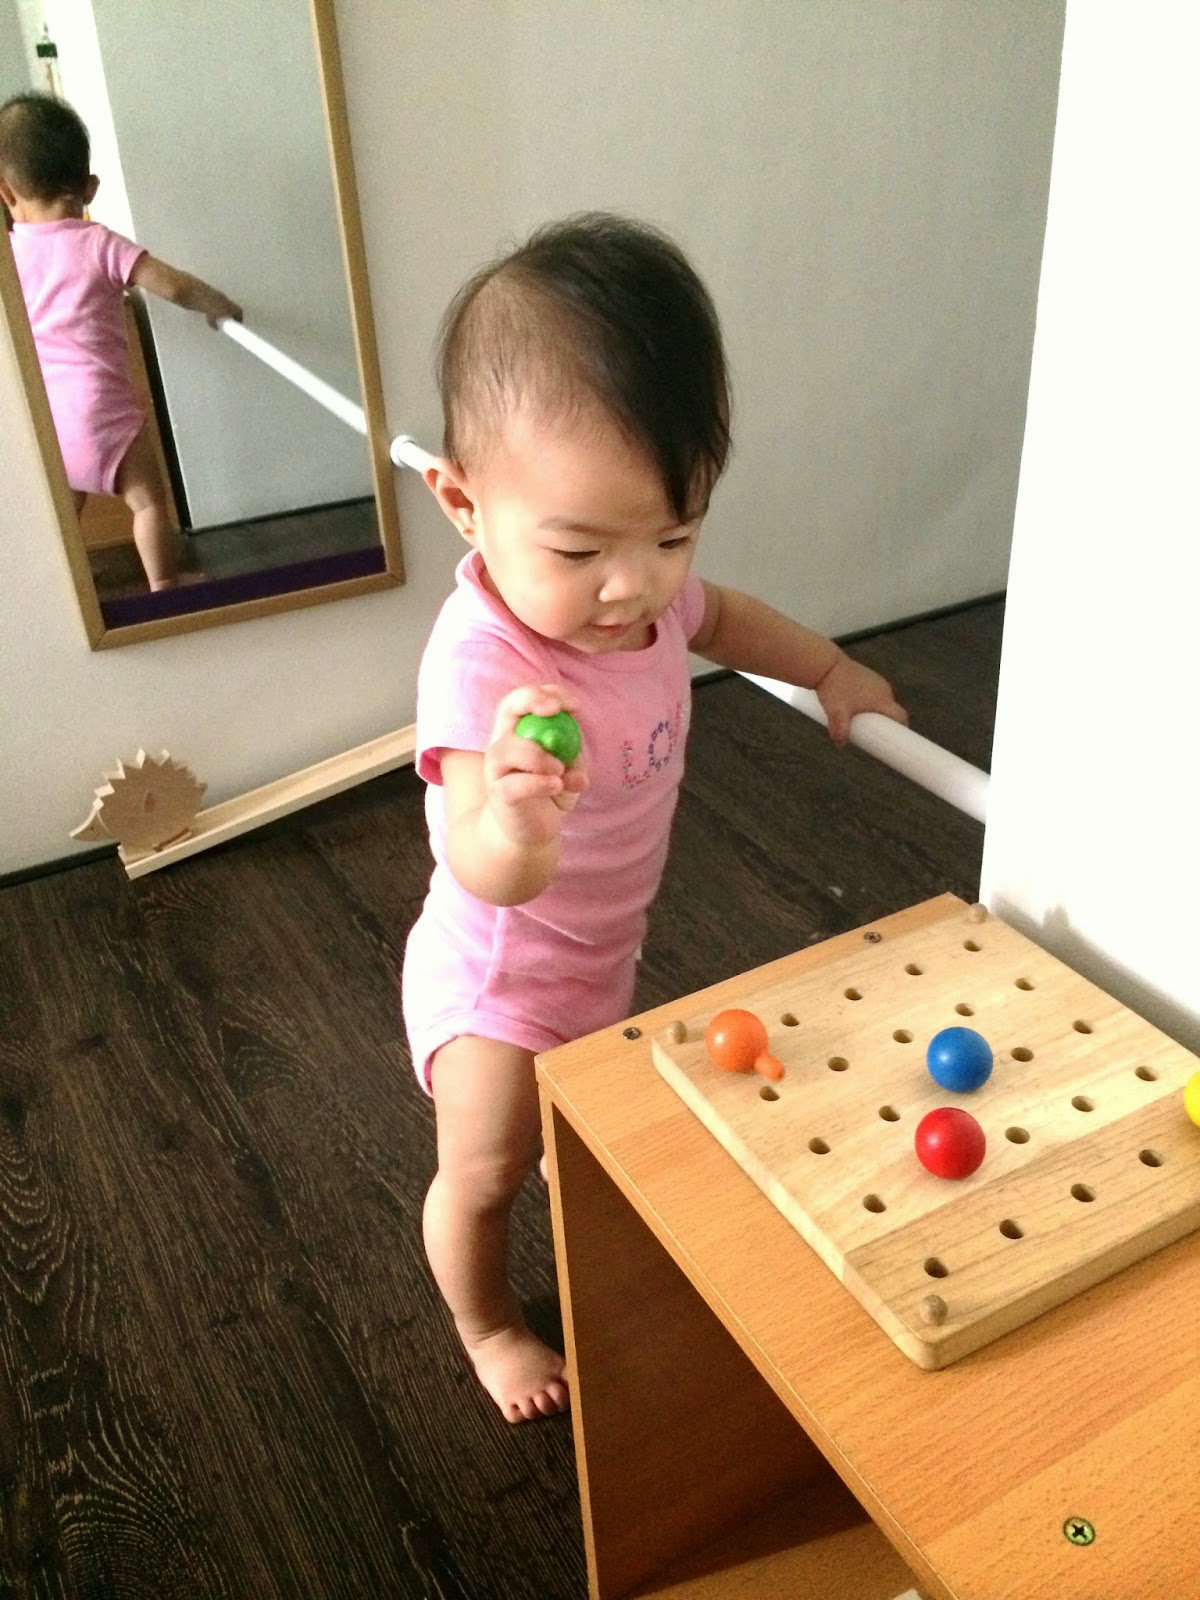 sensitive period to order montessori The sensitive periods dr montessori identified in the children of the 1st plane of development sensitive period for order it starts from birth and peaks at 18 months to 25 years and prolongs to age five this is characterized by.